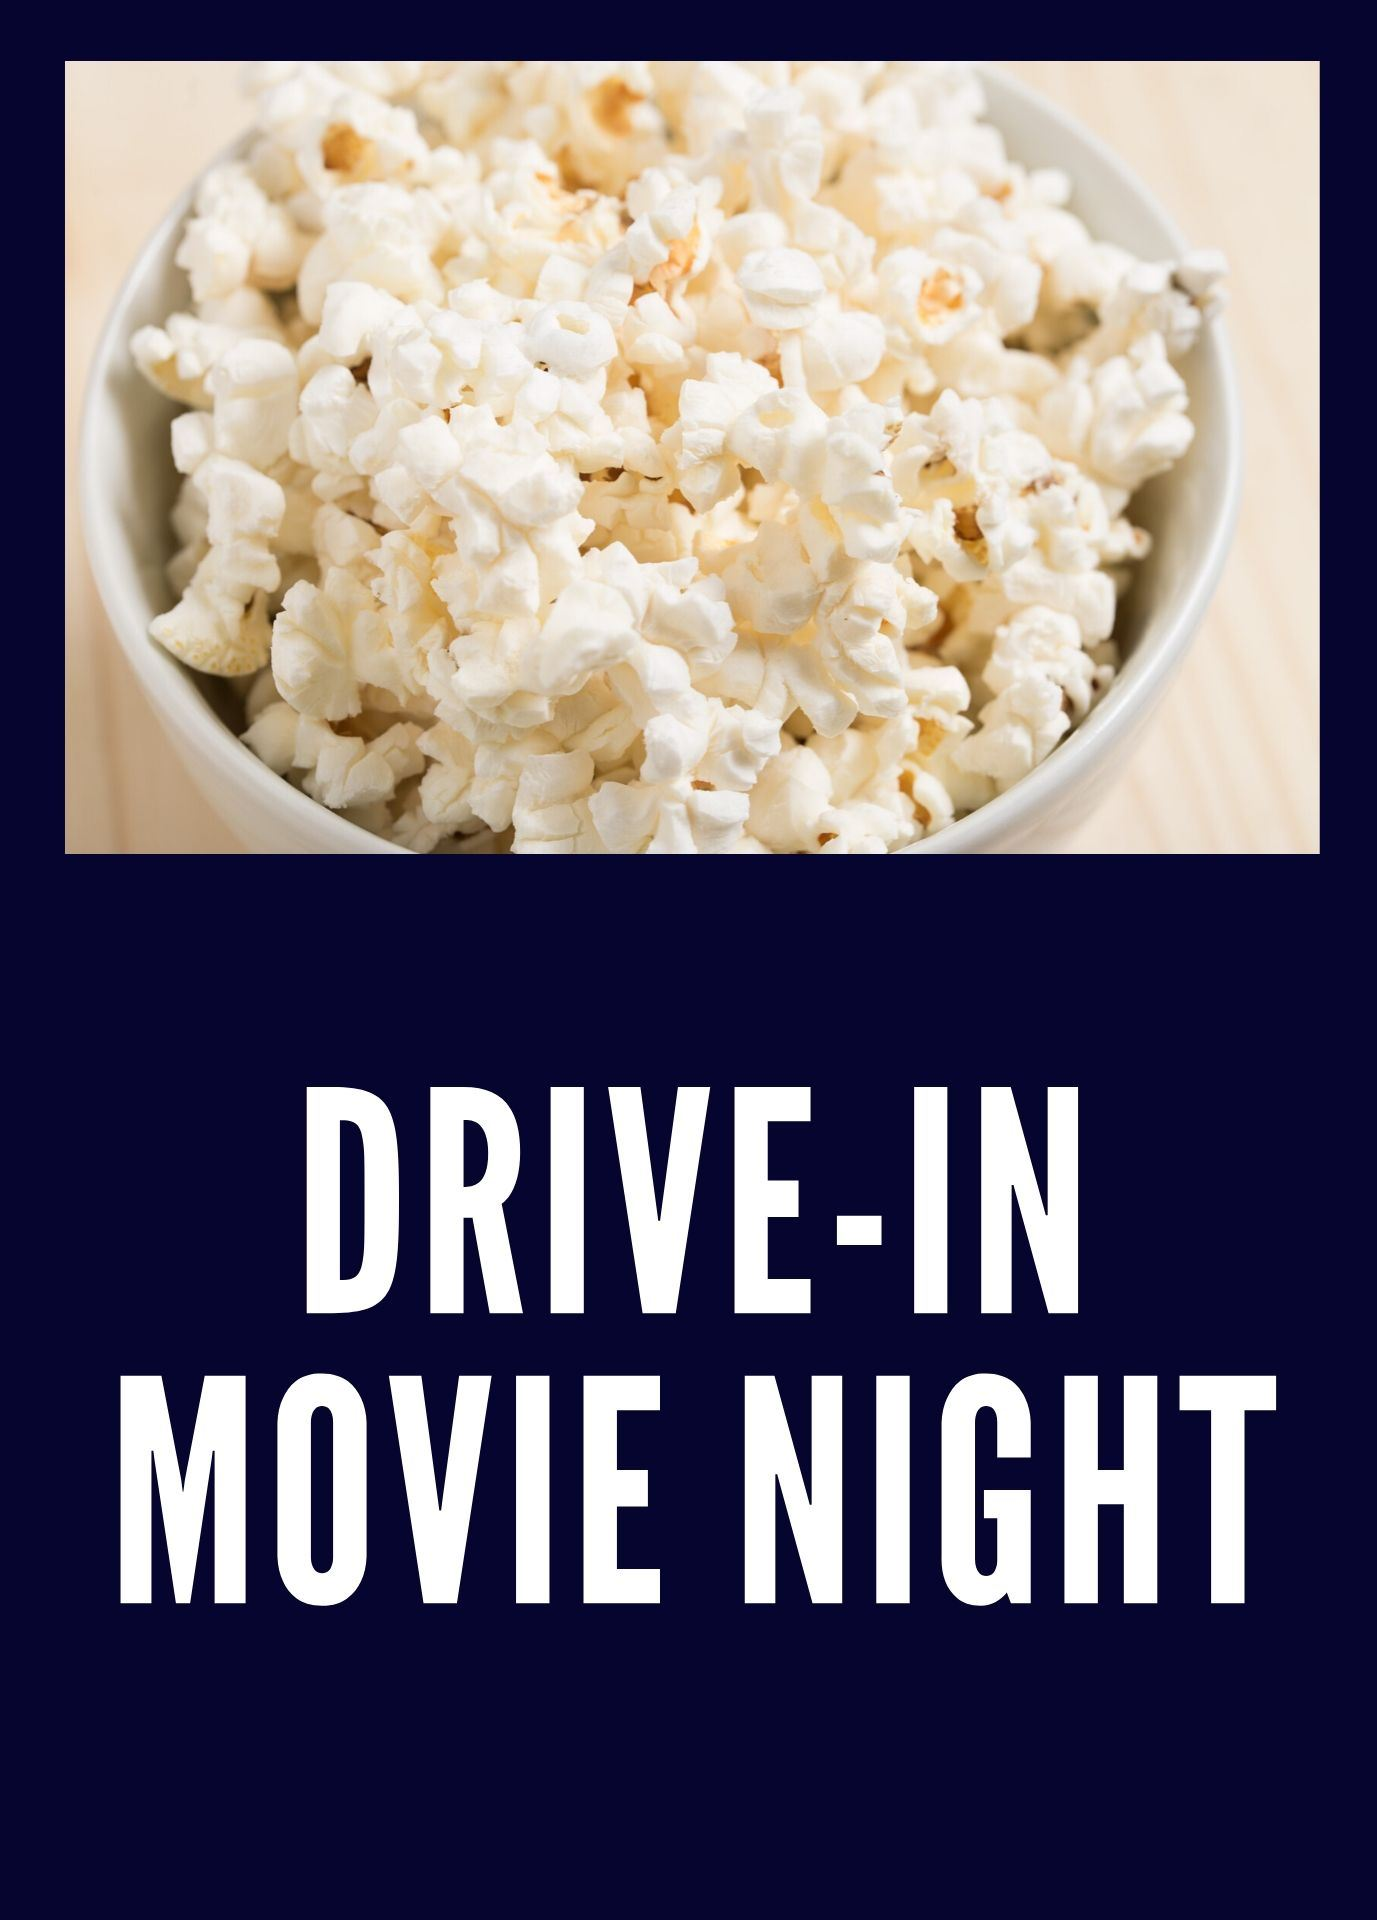 Bowl of popcorn. Text: Drive-In Movie Night